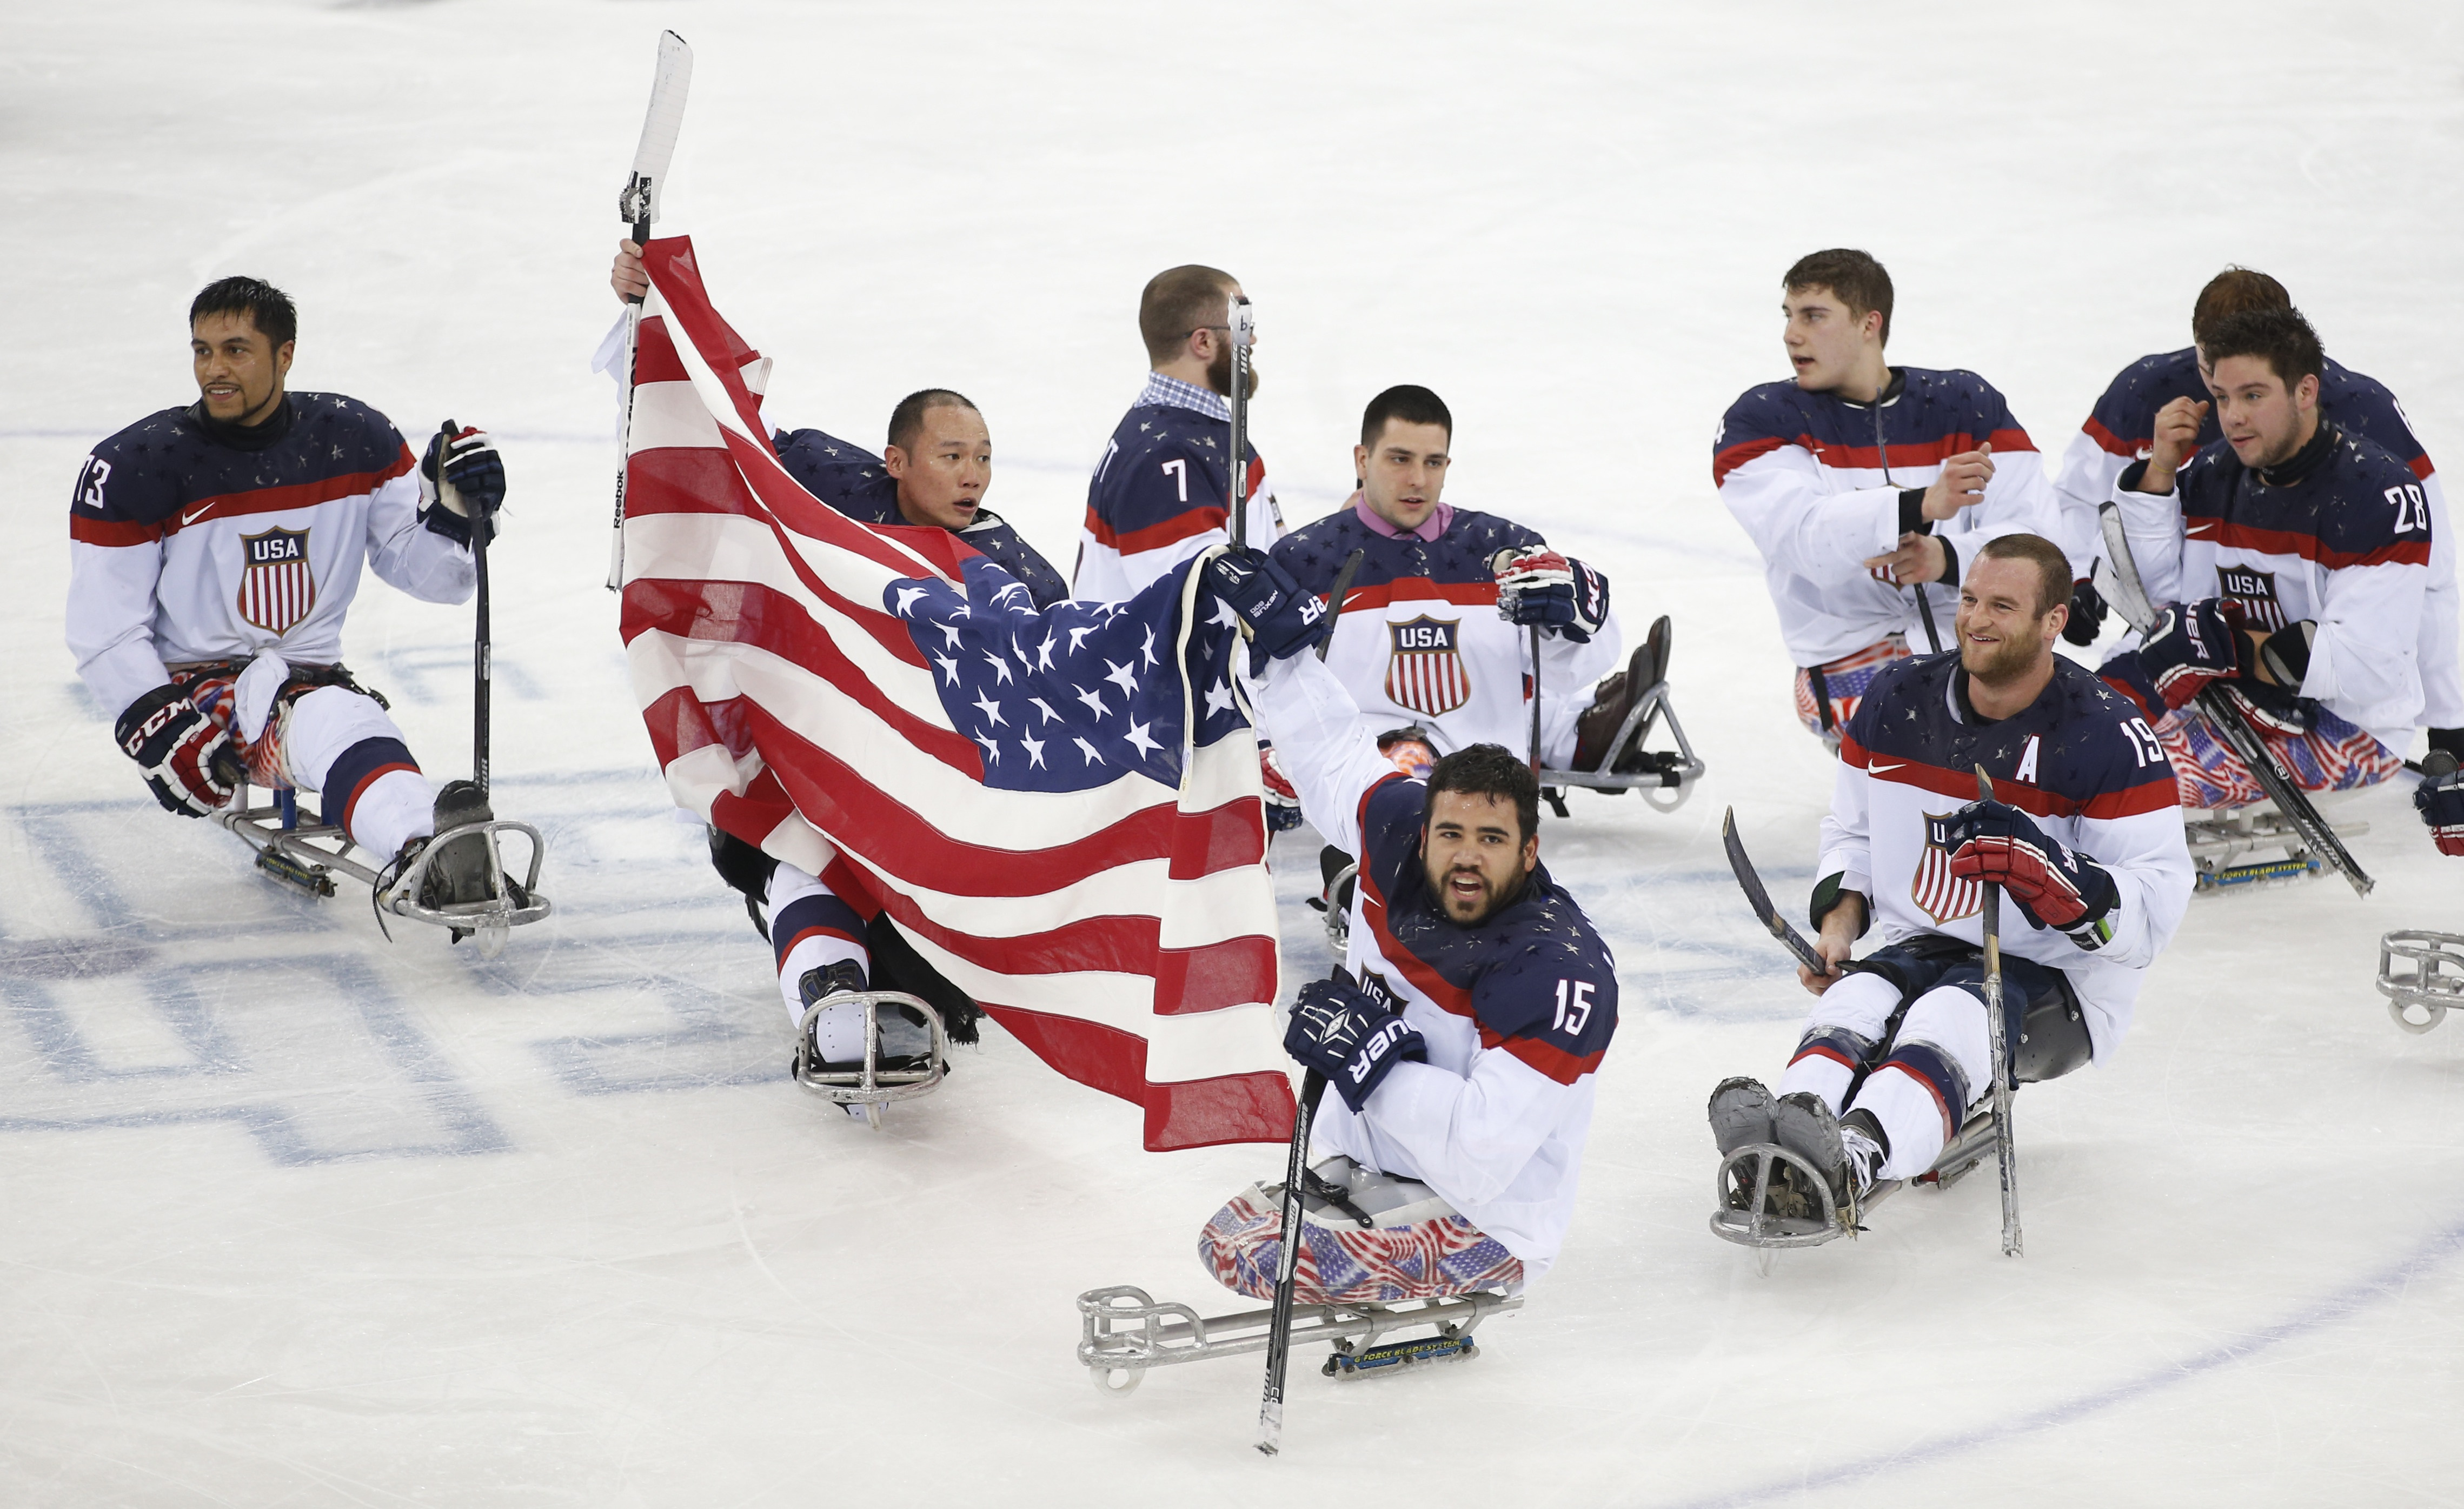 <p>U.S. Paralympic hockey players, including Nikko Landeros in the Number 15 jersey, celebrate their win at the 2014 games in Sochi, Russia.</p>